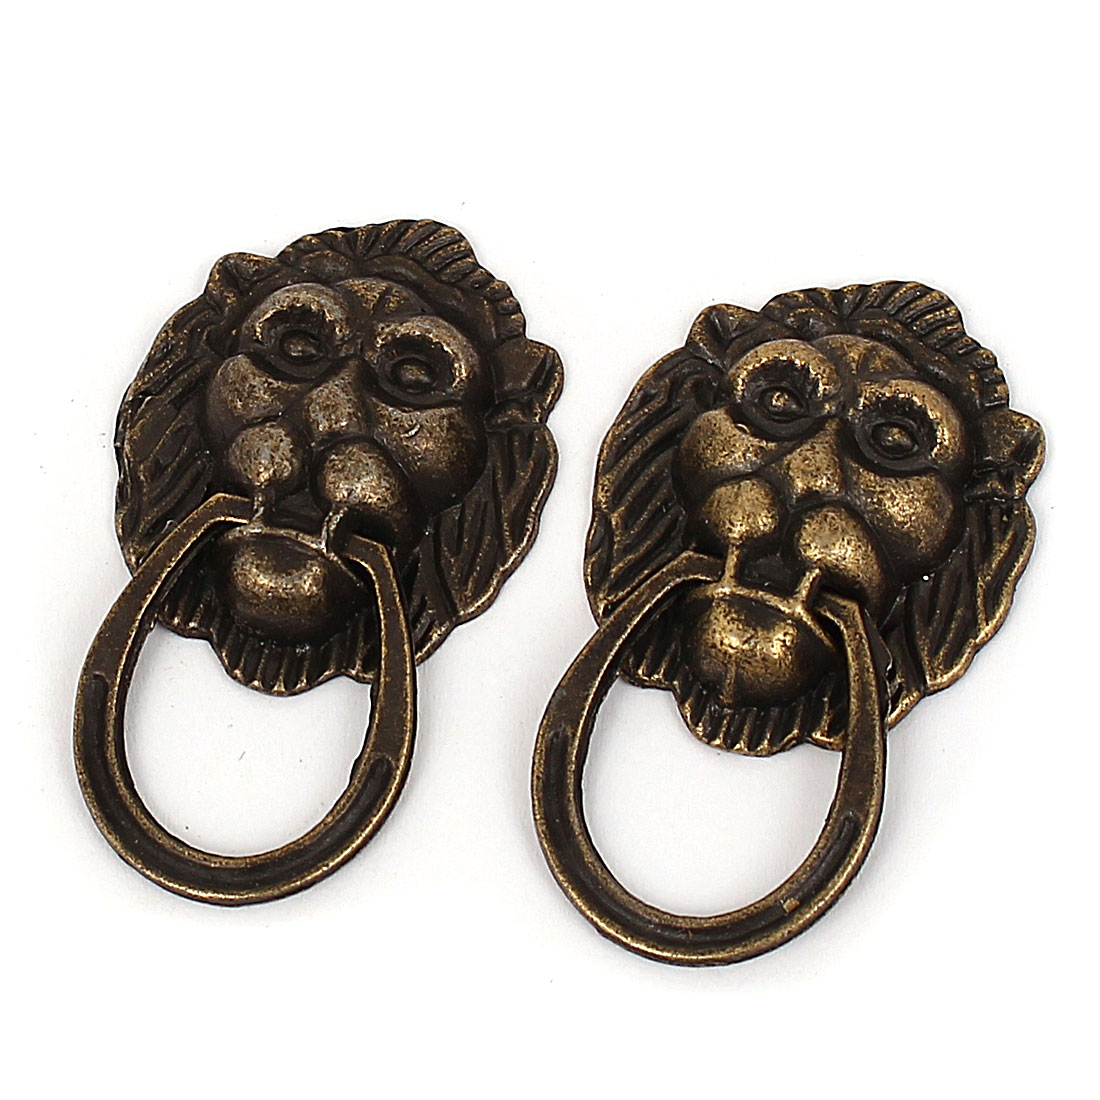 Home Door Box Case Lion Head Shape Metal Pull Knobs Handle Bronze Tone 2pcs